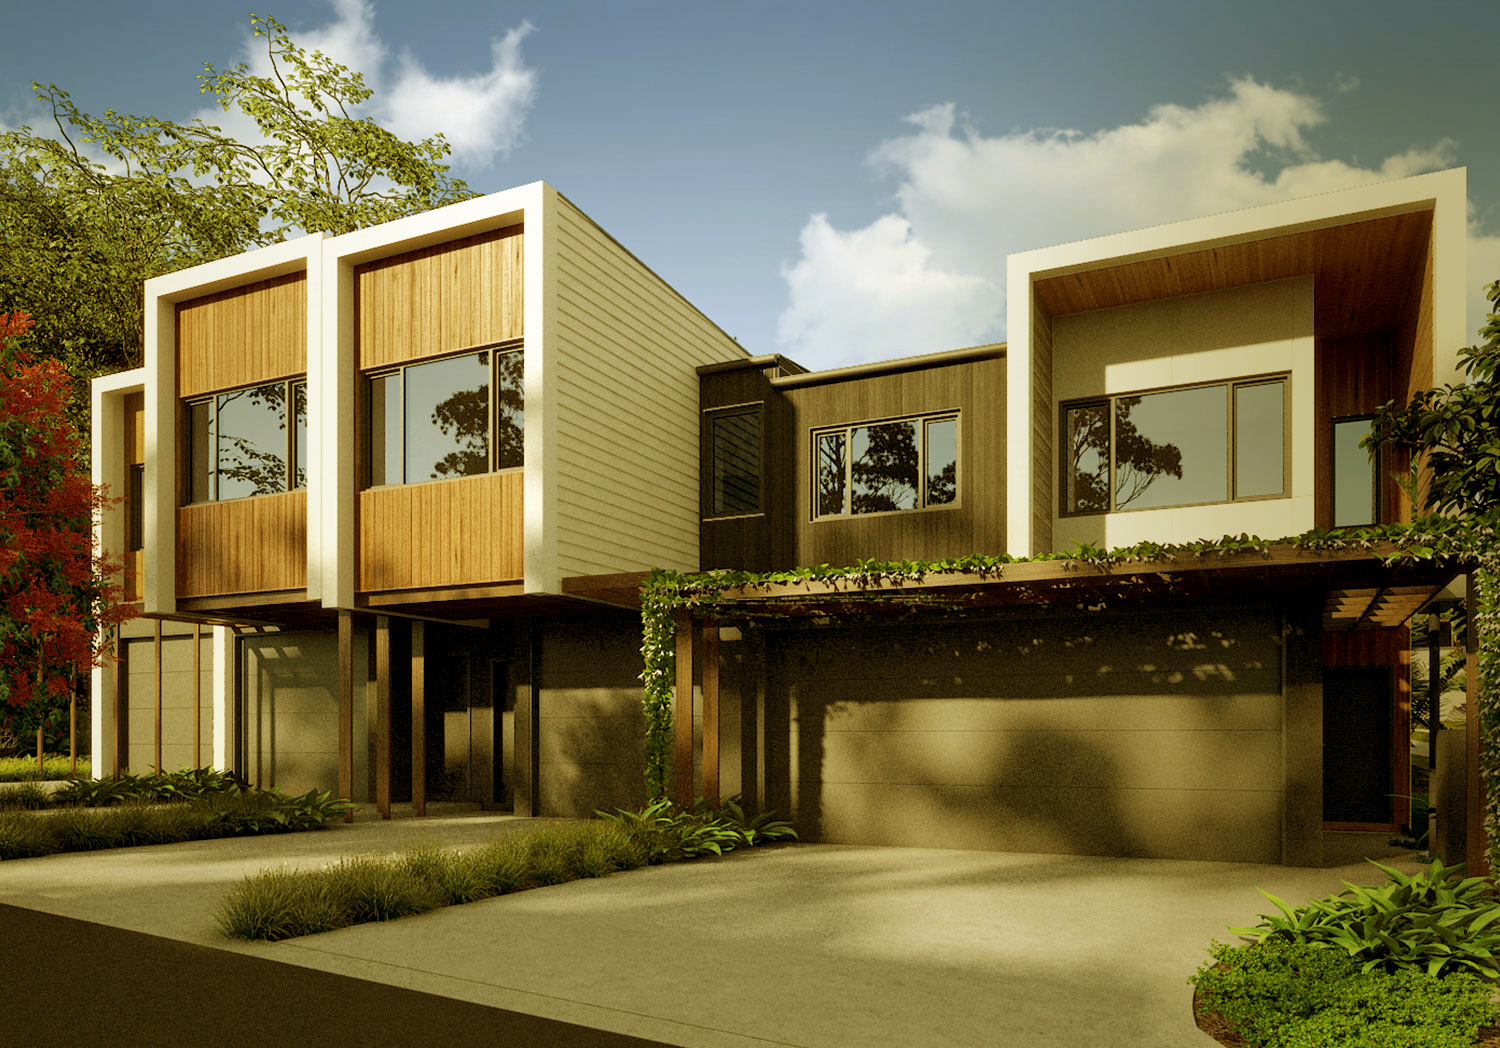 Banksia townhouse development